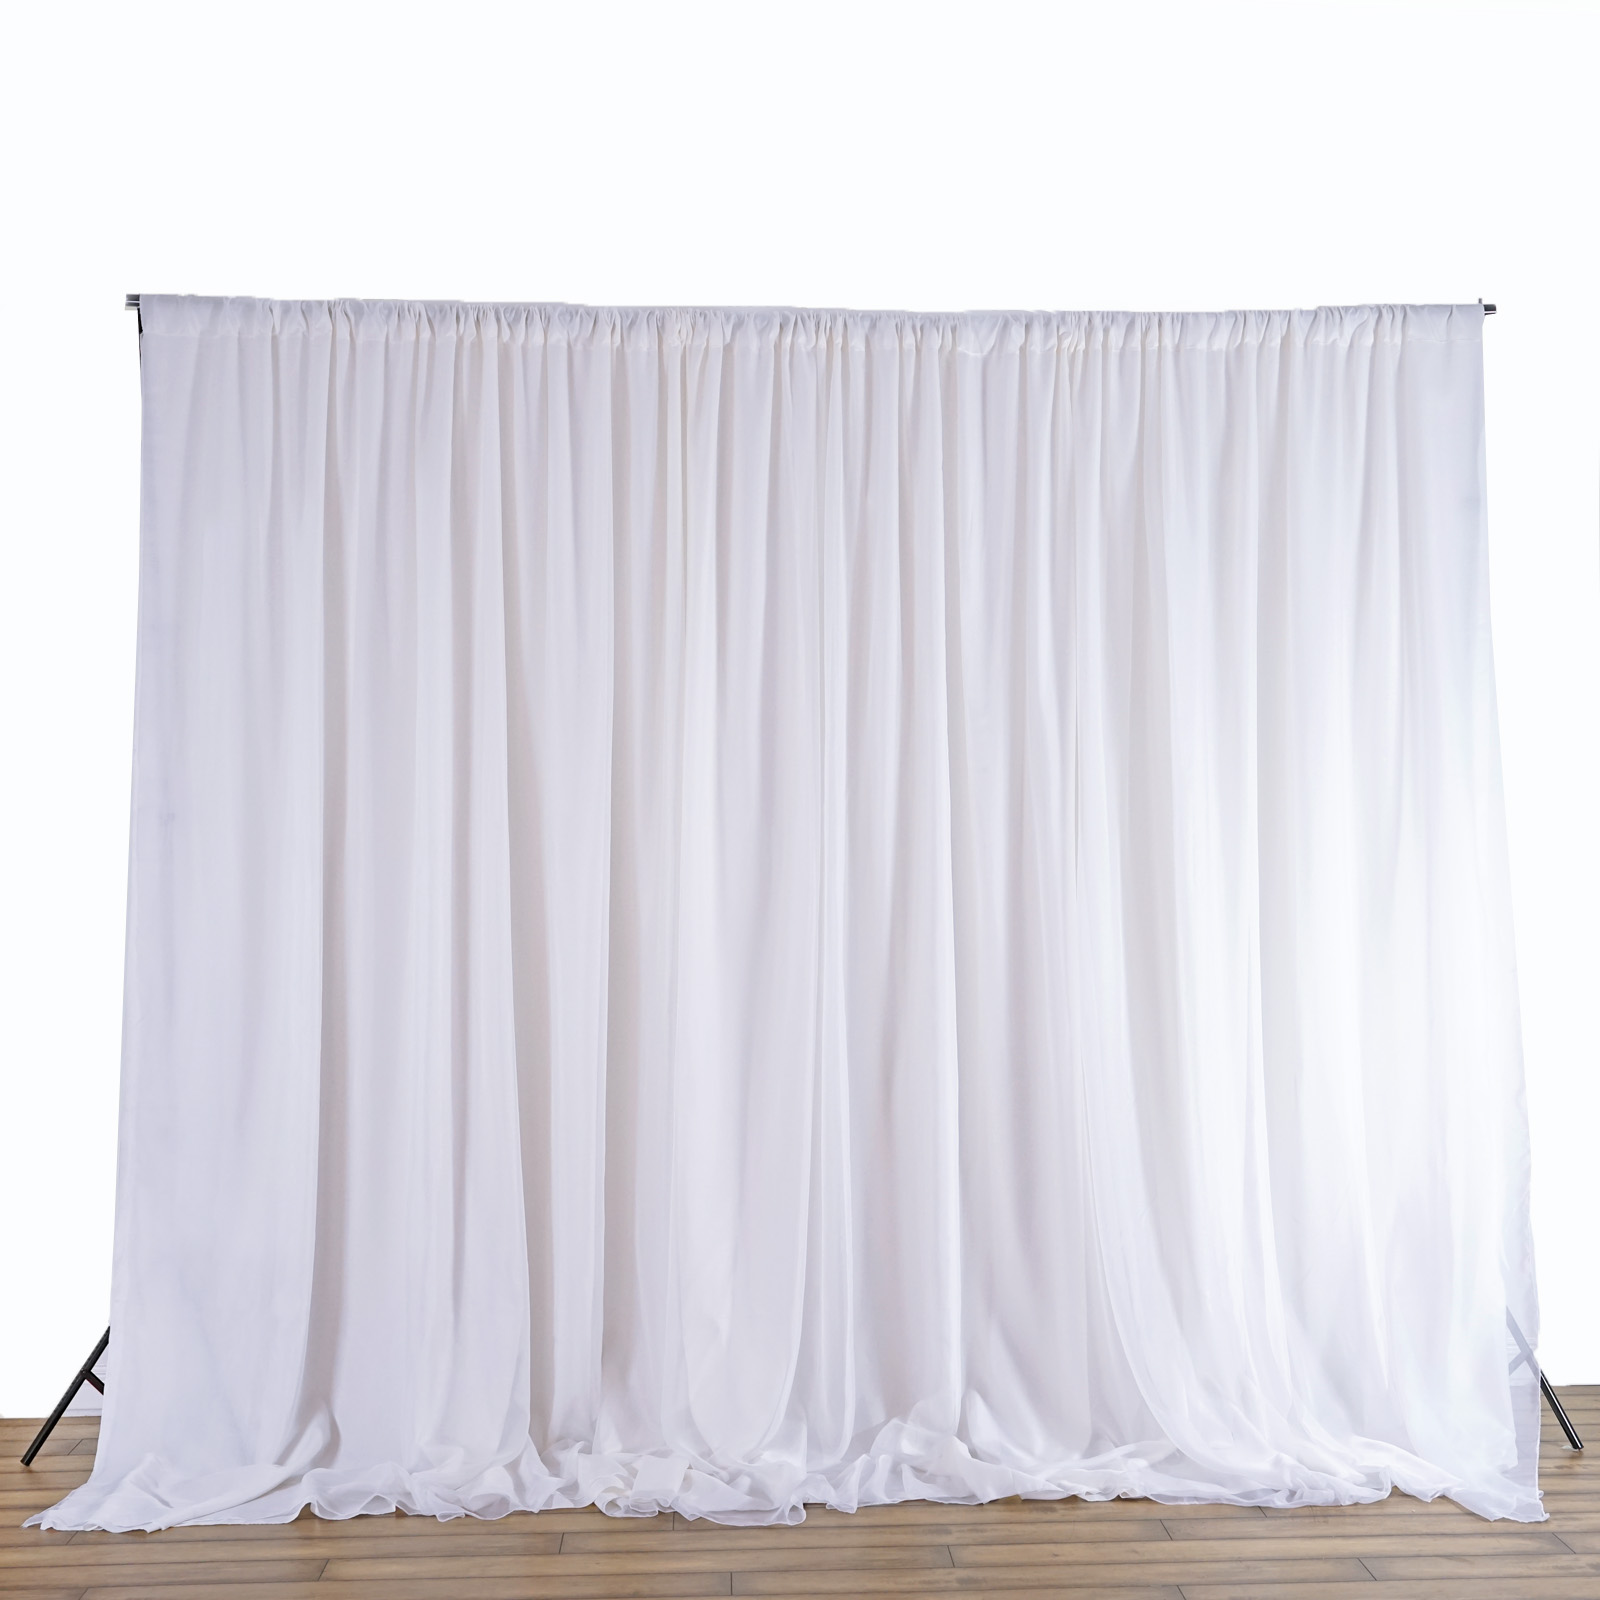 20ft X 8ft White Professional Backdrop Photo Background